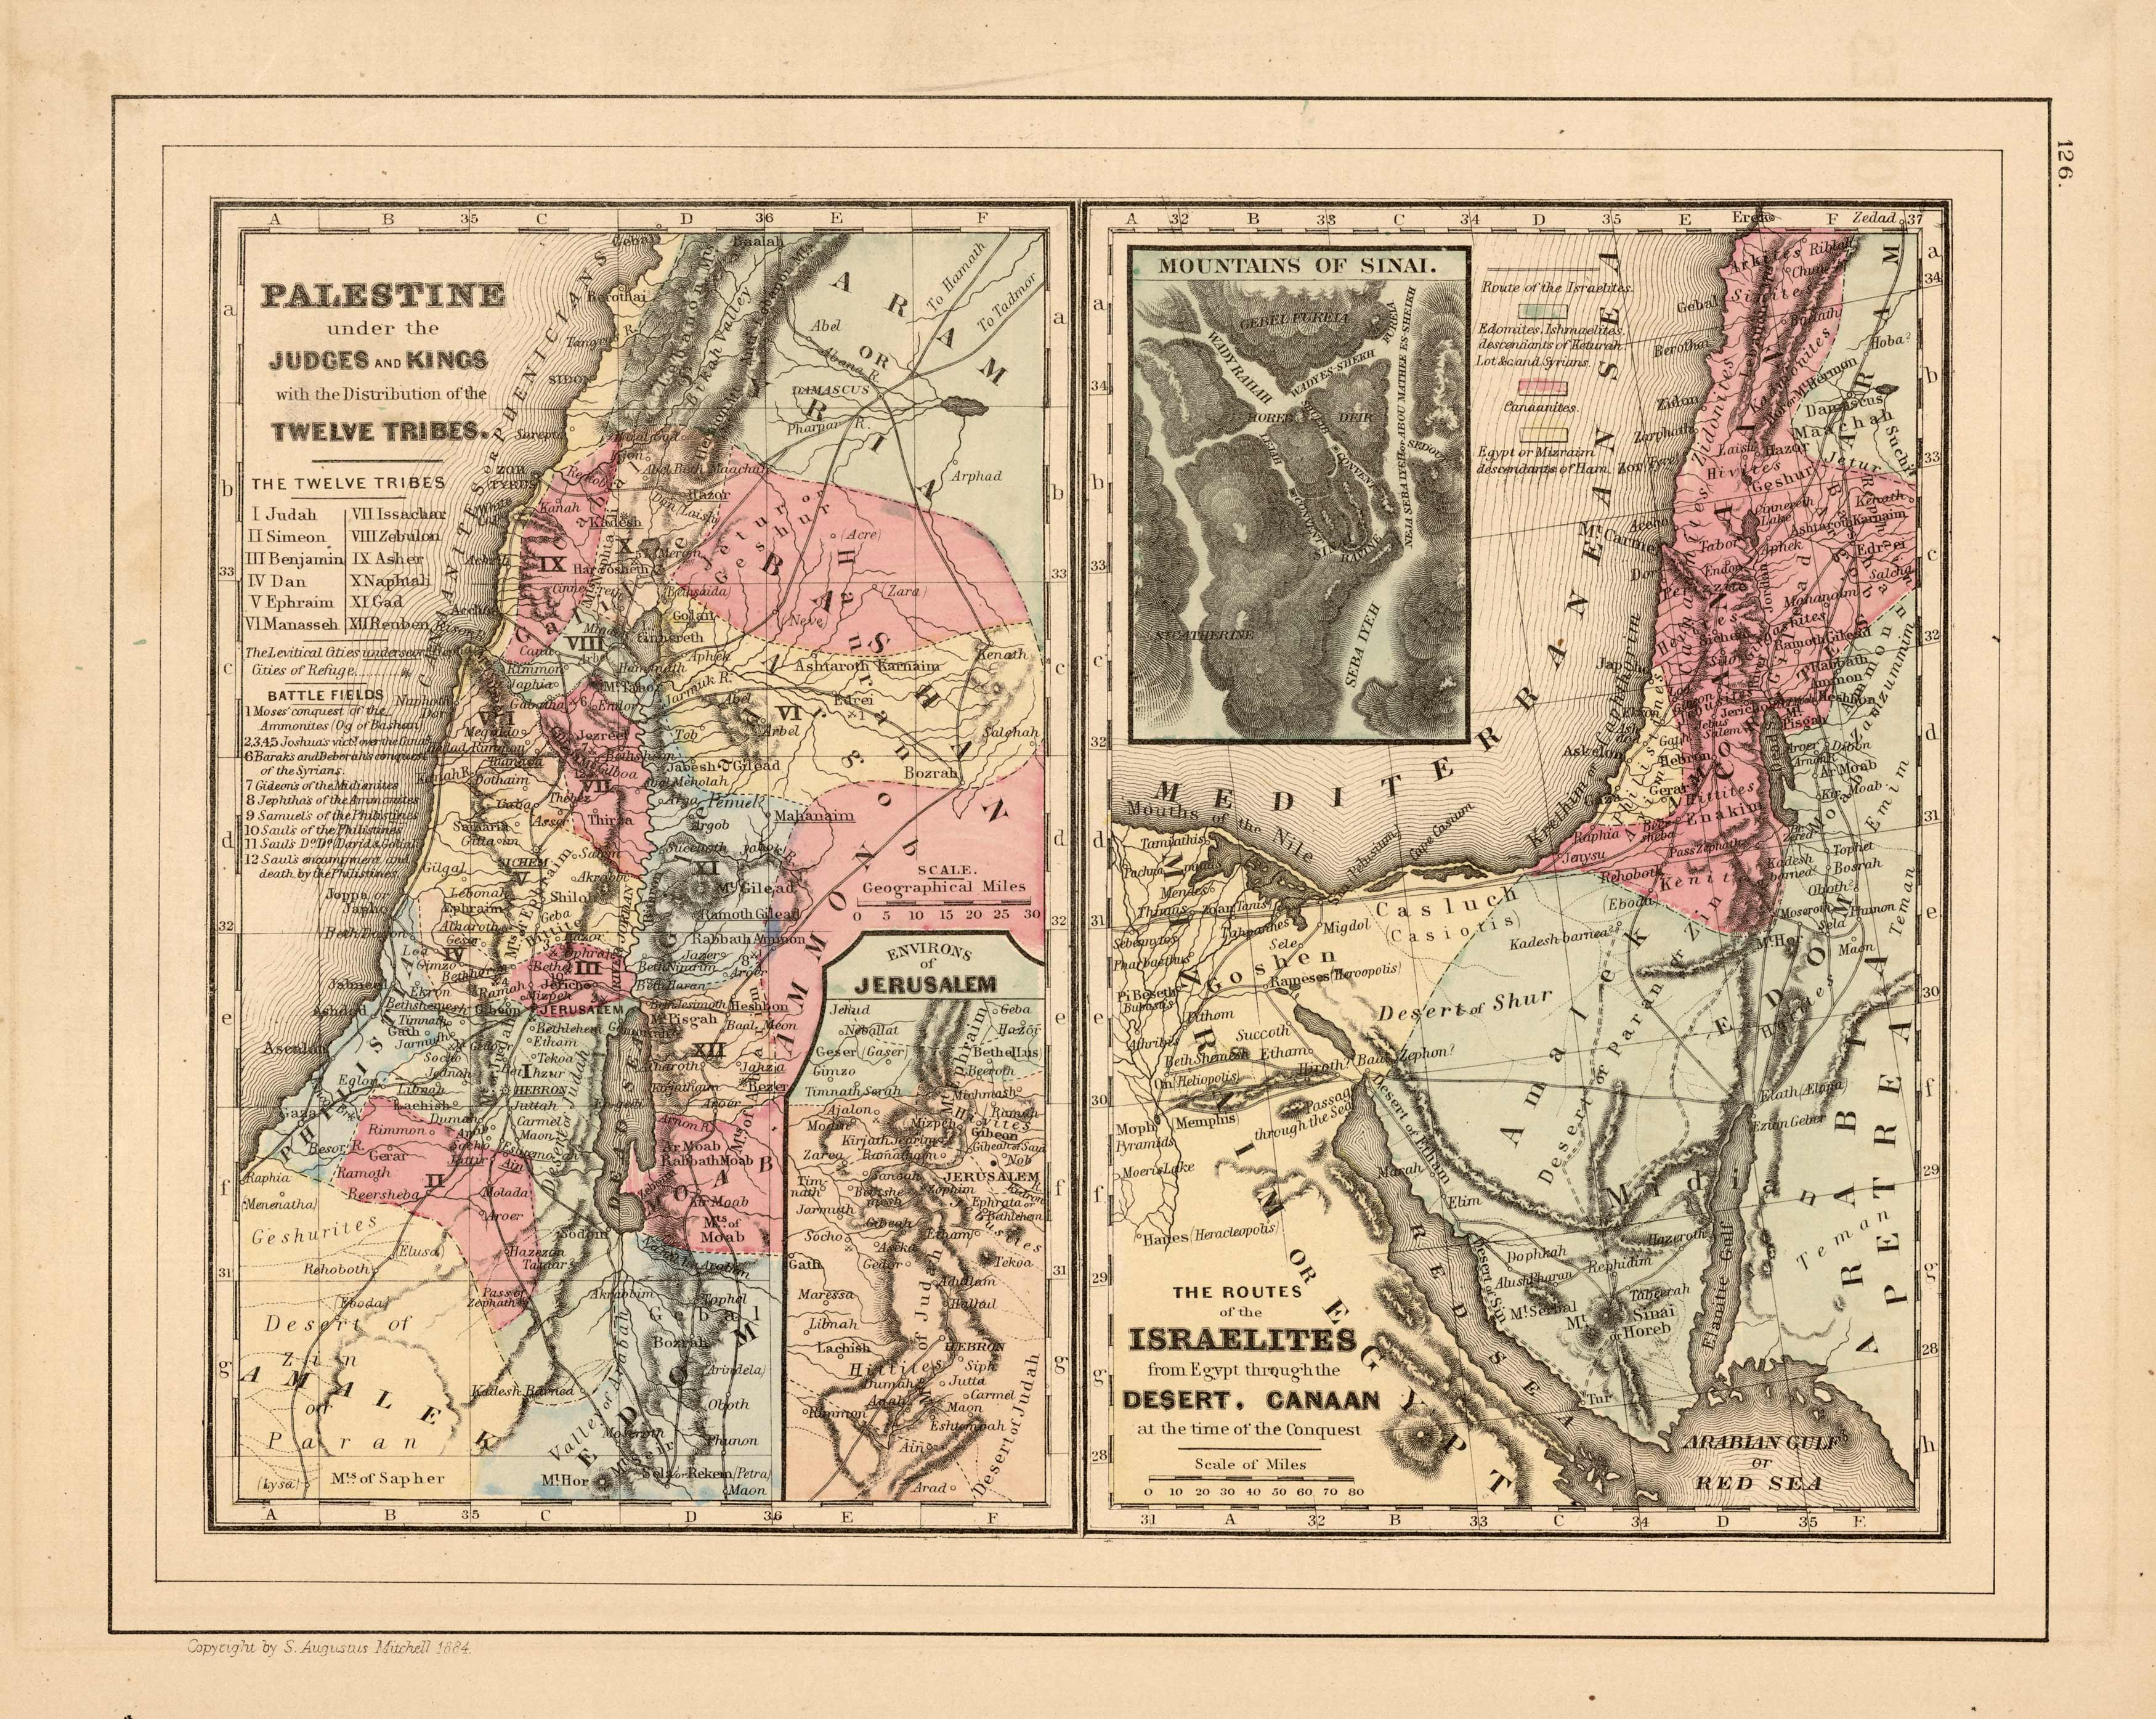 Palestine under the Judges and Kings with the Distribution of the Twelve Tribes and The Routes of the Israelites from Egypt Through the Desert. Canaan at the Time of the Conquest